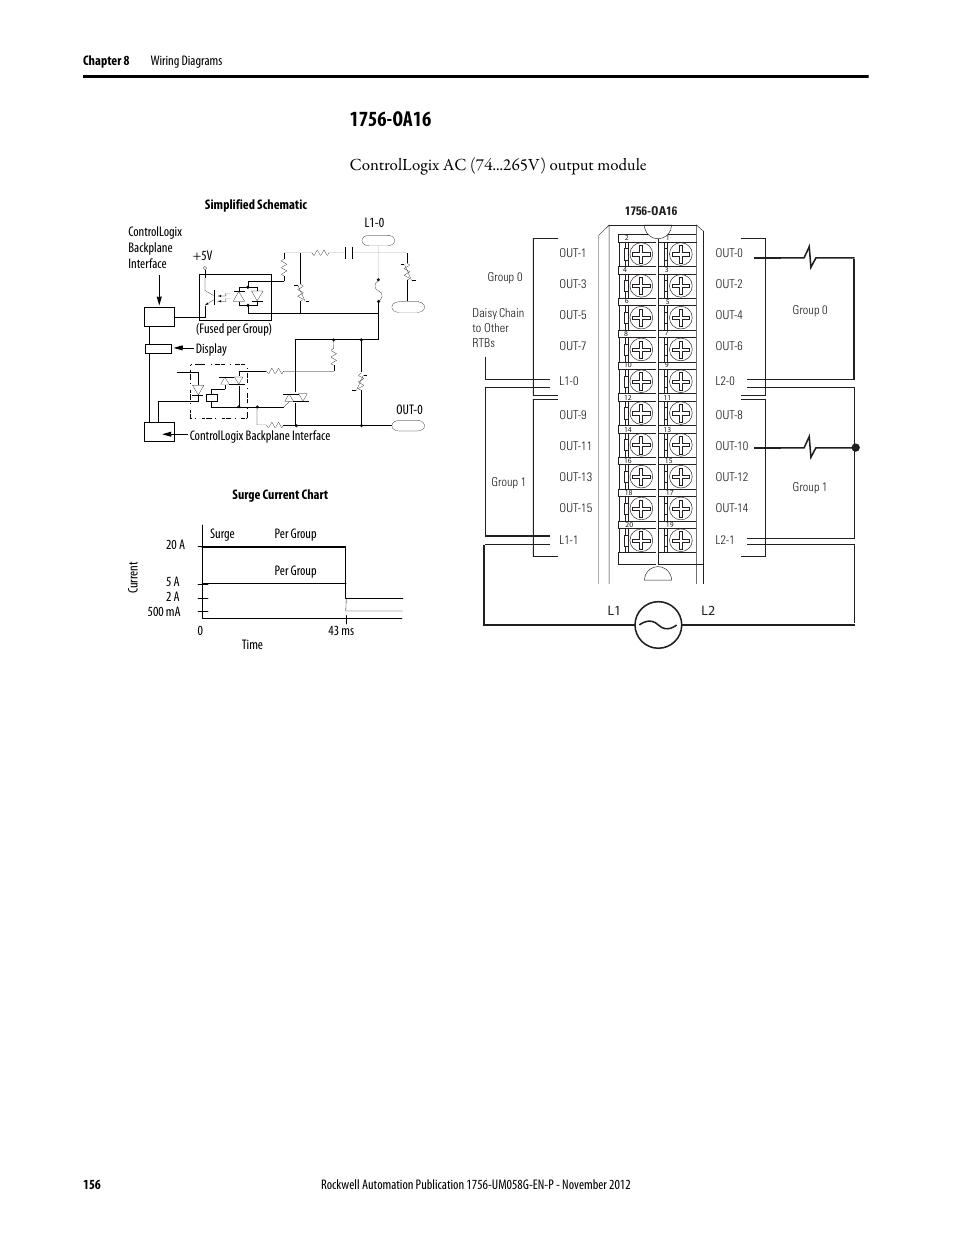 rockwell automation 1756 xxxx controllogix digital i_o modules page156 1756 oa16, controllogix ac (74 v) output module rockwell 1756 ia16 wiring diagram at mifinder.co